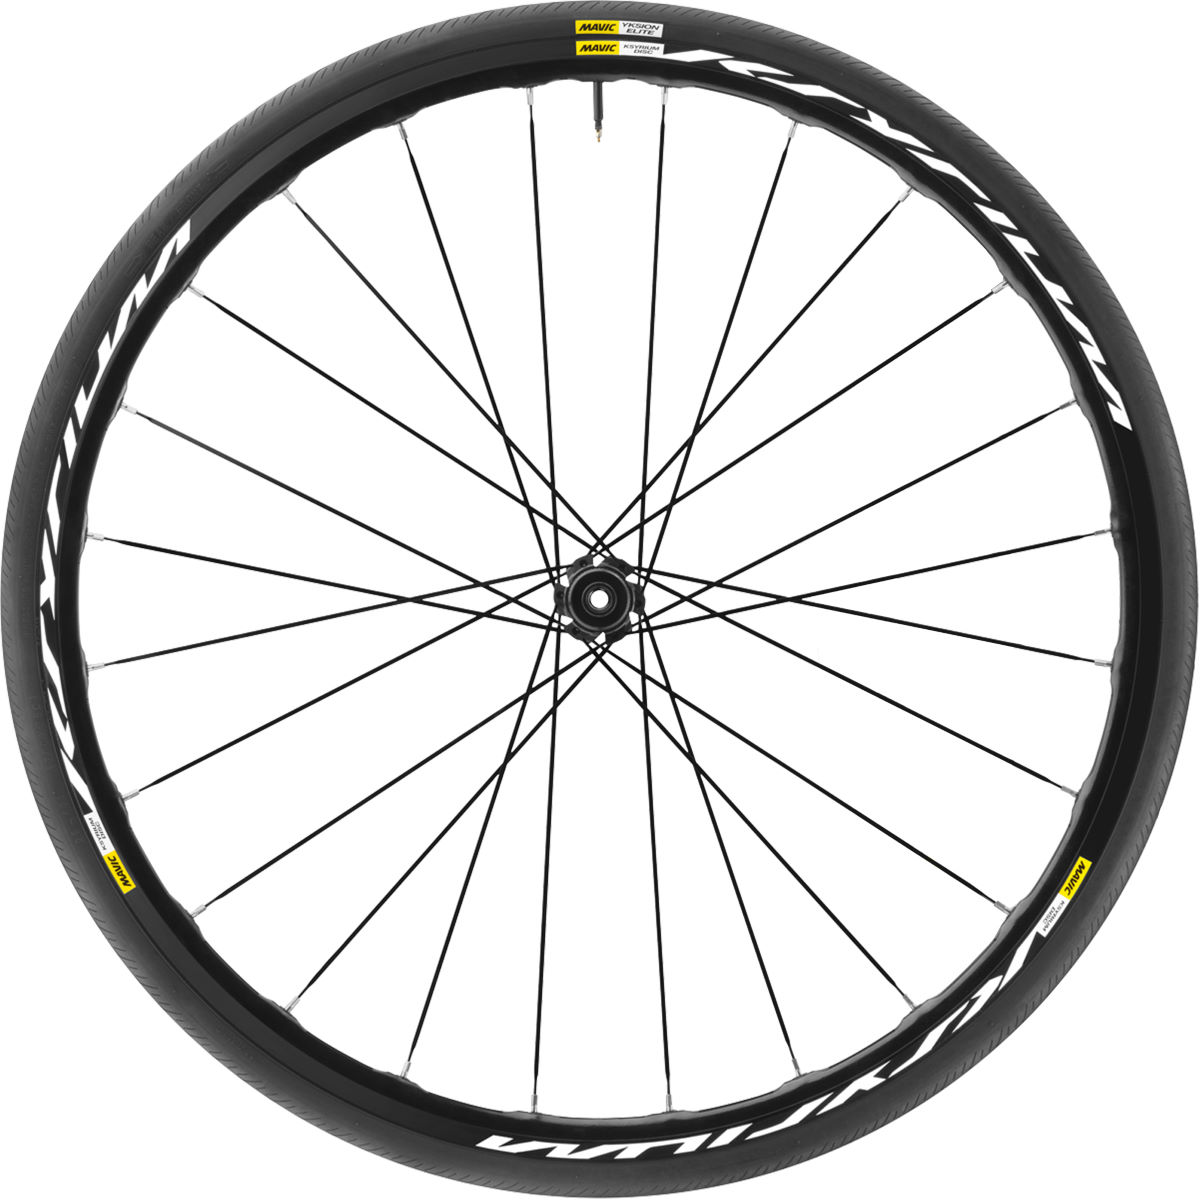 Mavic Ksyrium Disc TA Front Wheel - Front wheels